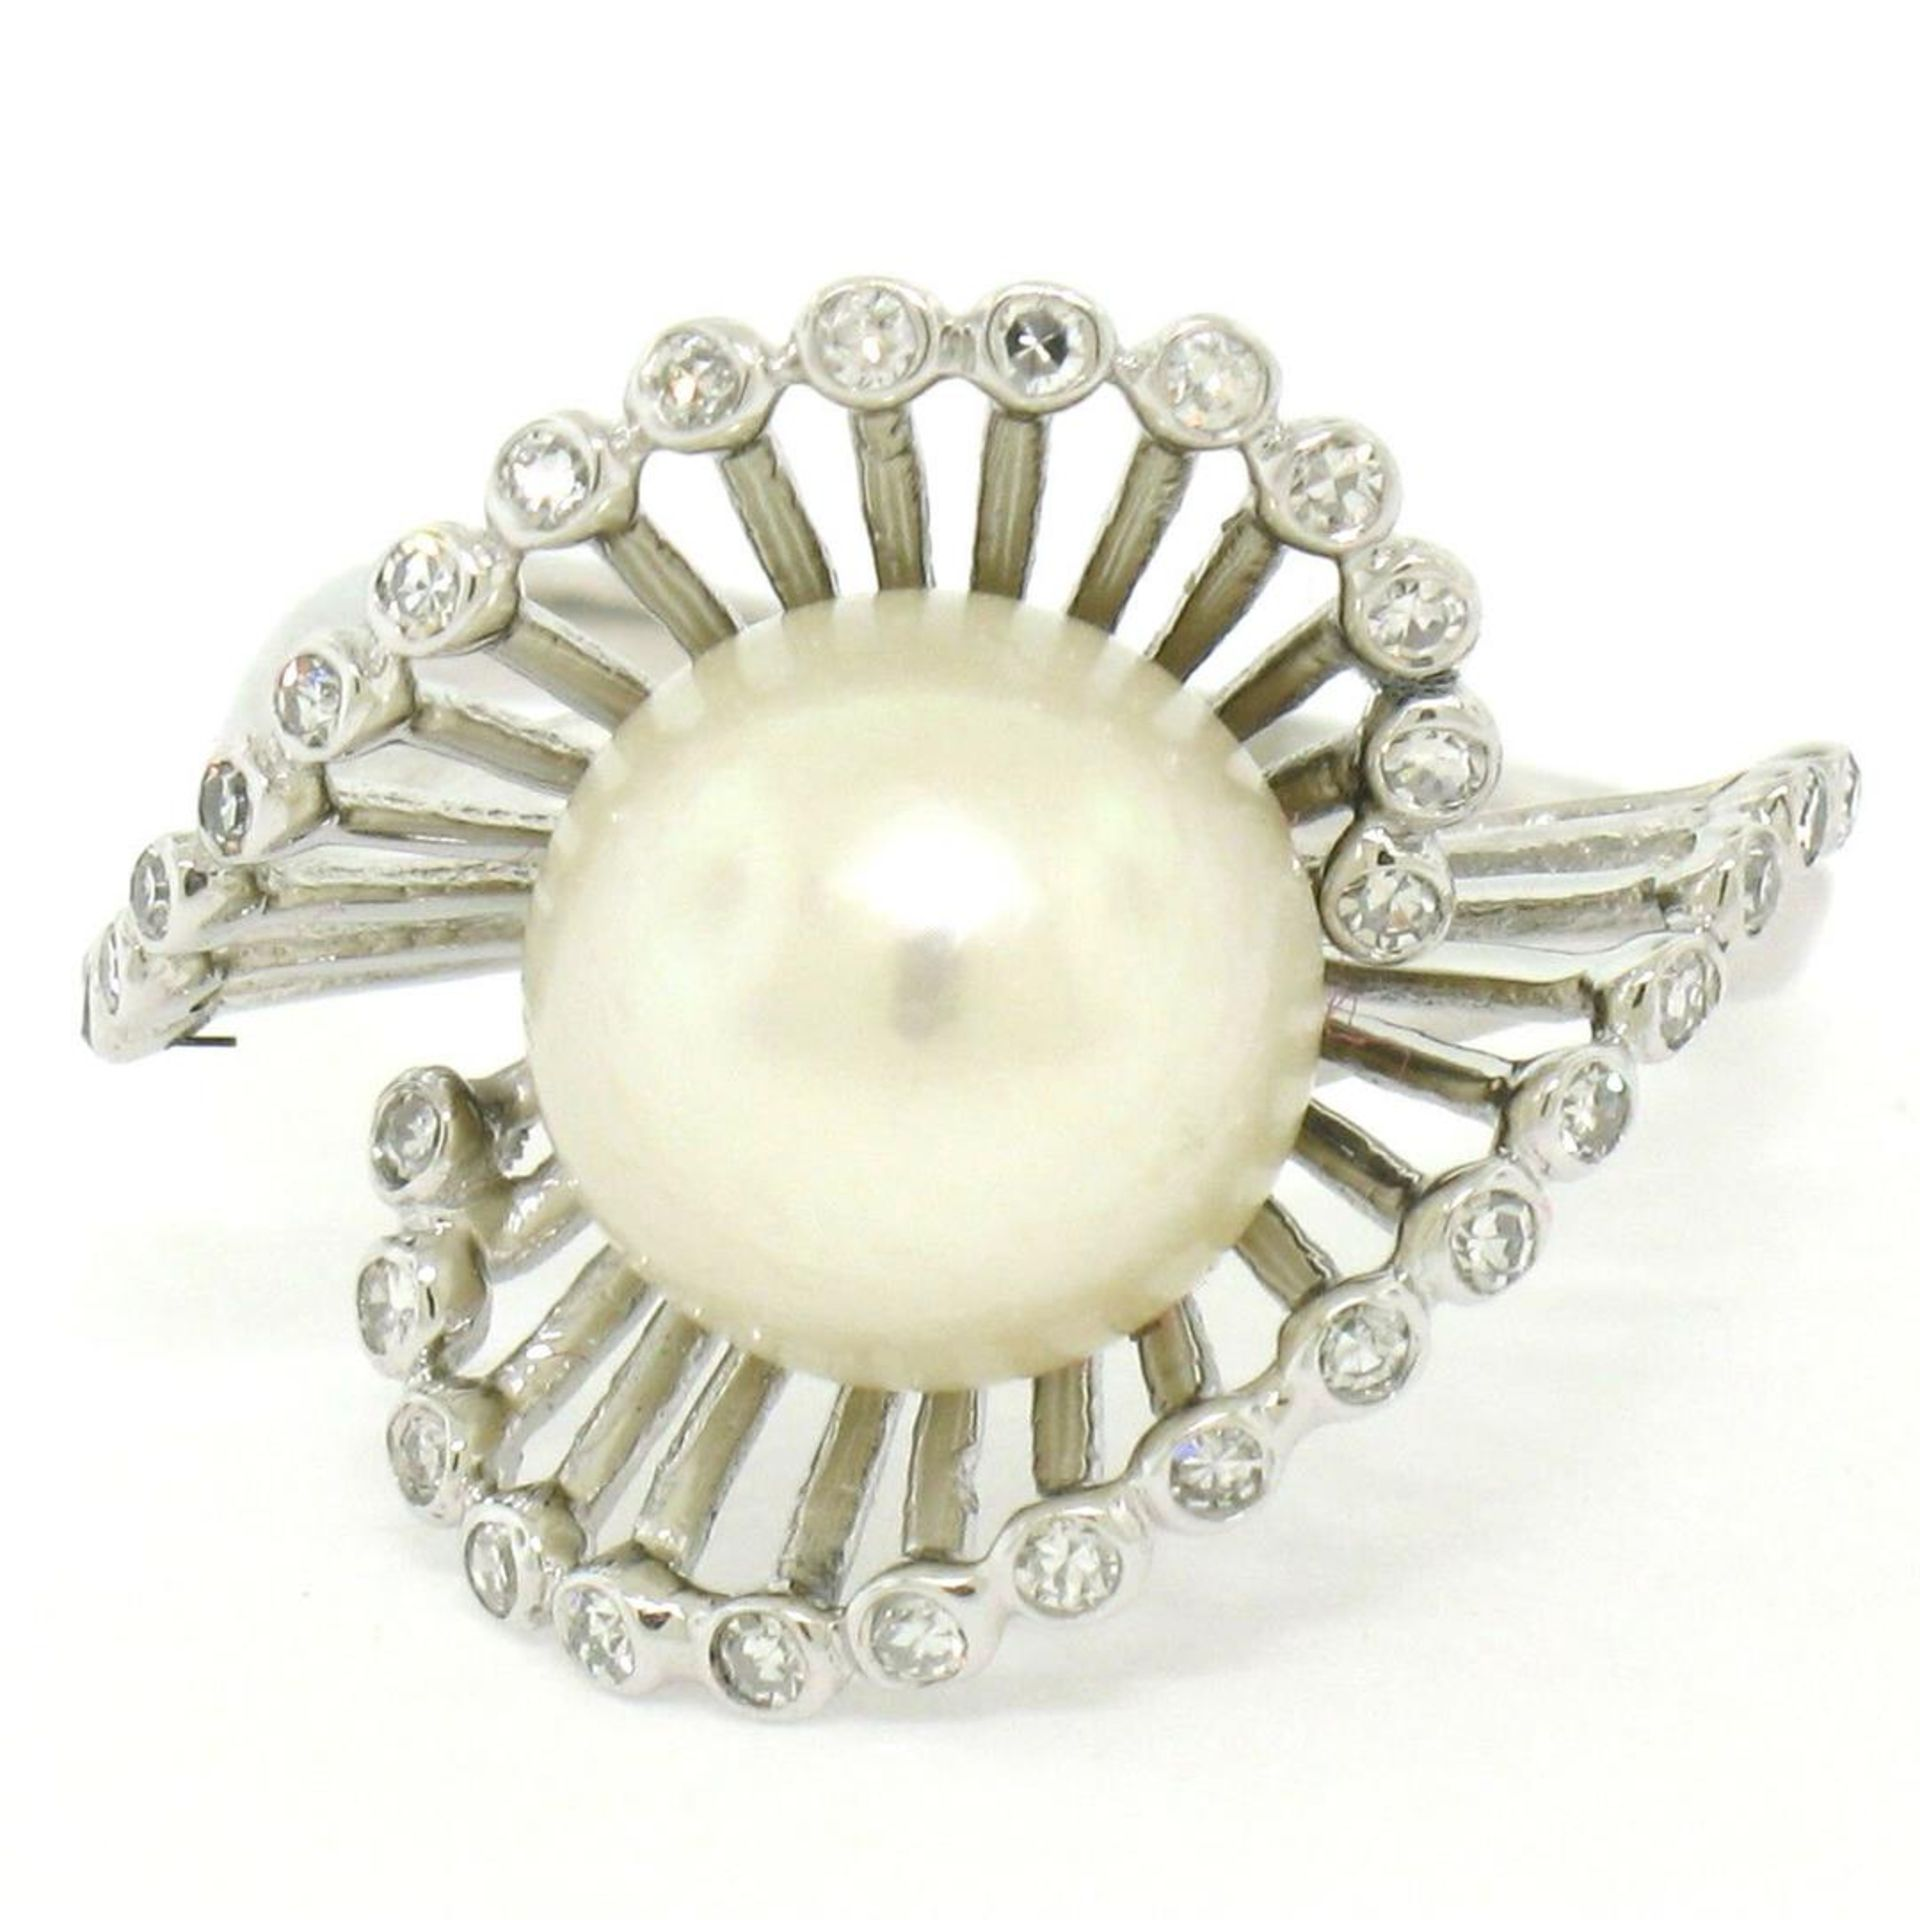 Vintage 14K White Gold 8.5mm Pearl Bezel Diamond 2 Wave Bypass Cocktail Ring - Image 2 of 8